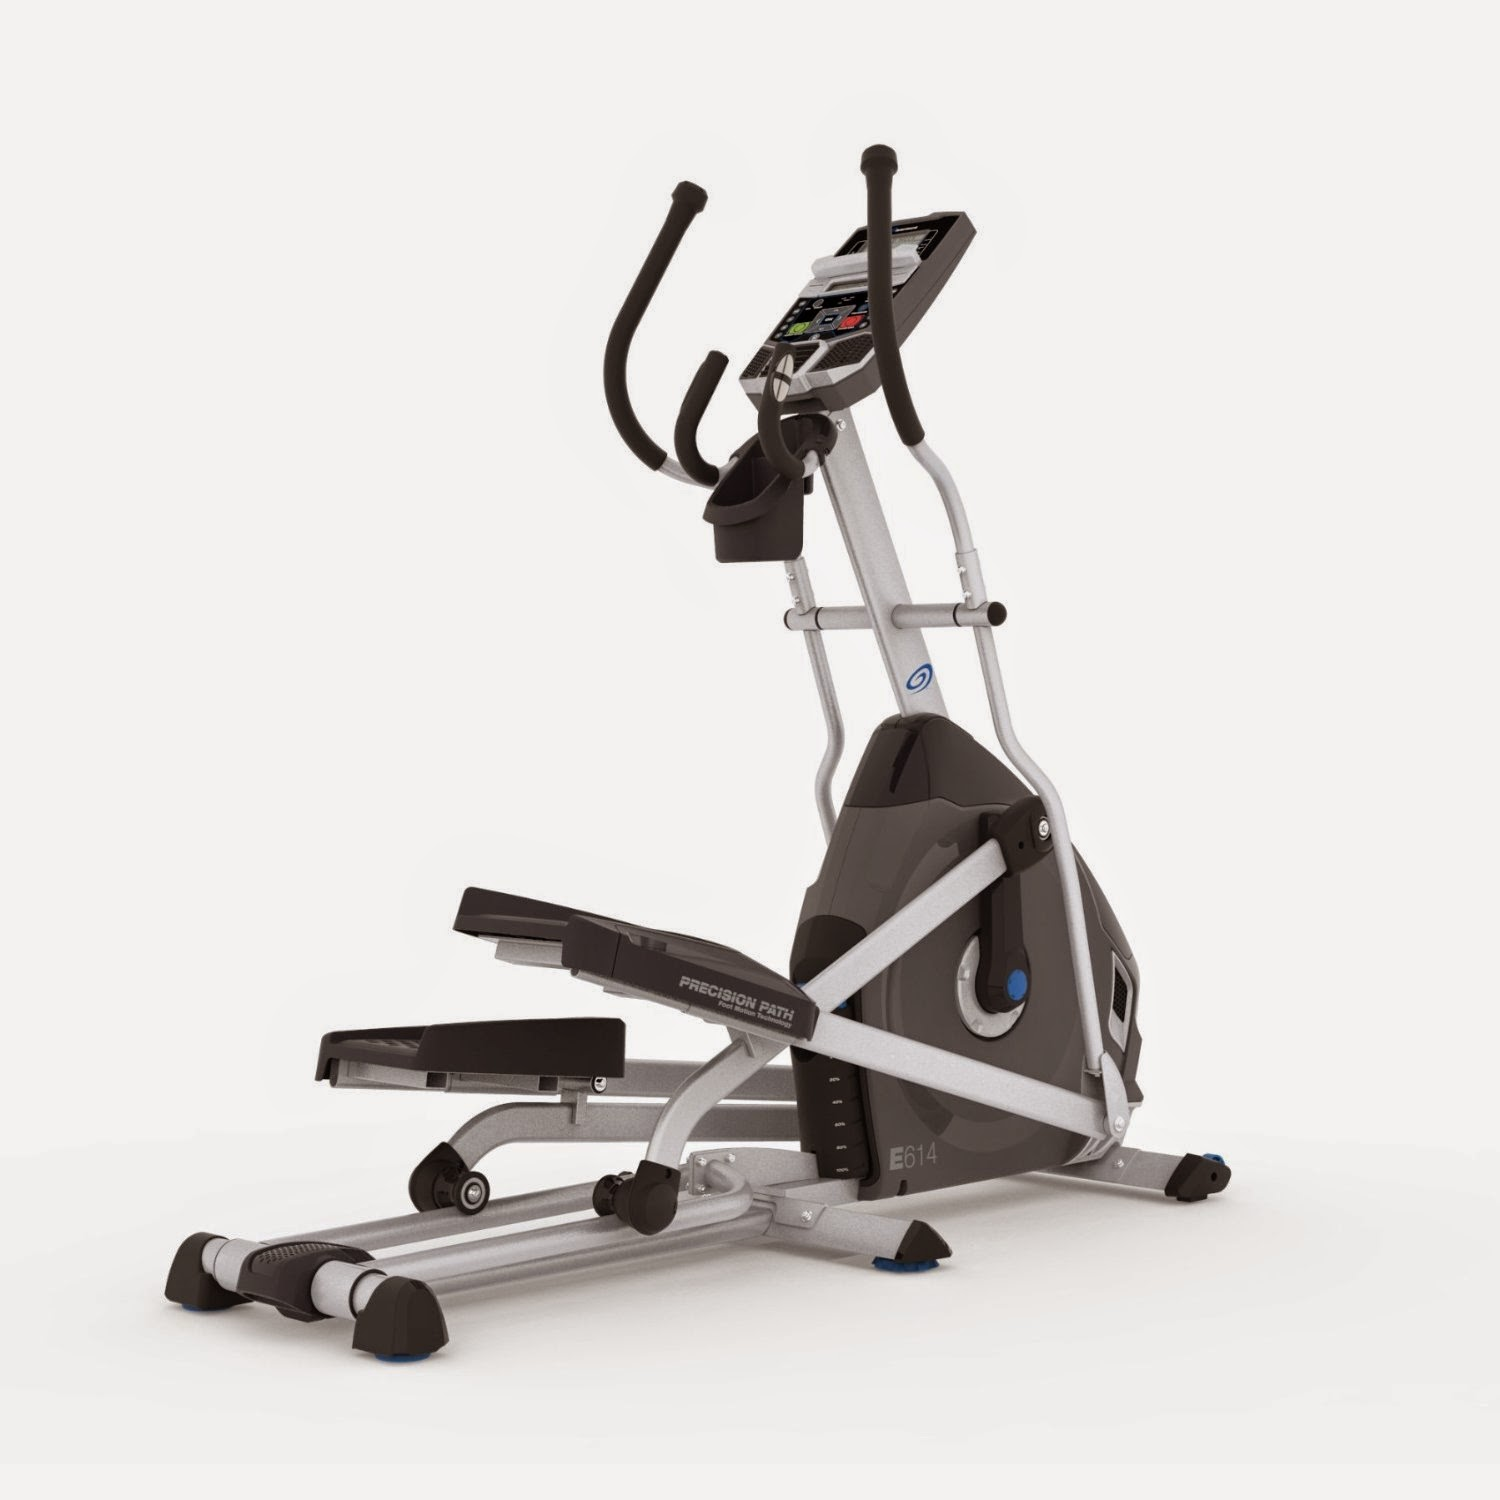 Nautilus E614 Elliptical Trainer, review features, 22 workout programs, 20 resistance levels, manual incline, dual track LCD display, acoustic chambered speakers, USB charging port and data export, compare with Nautilus E616